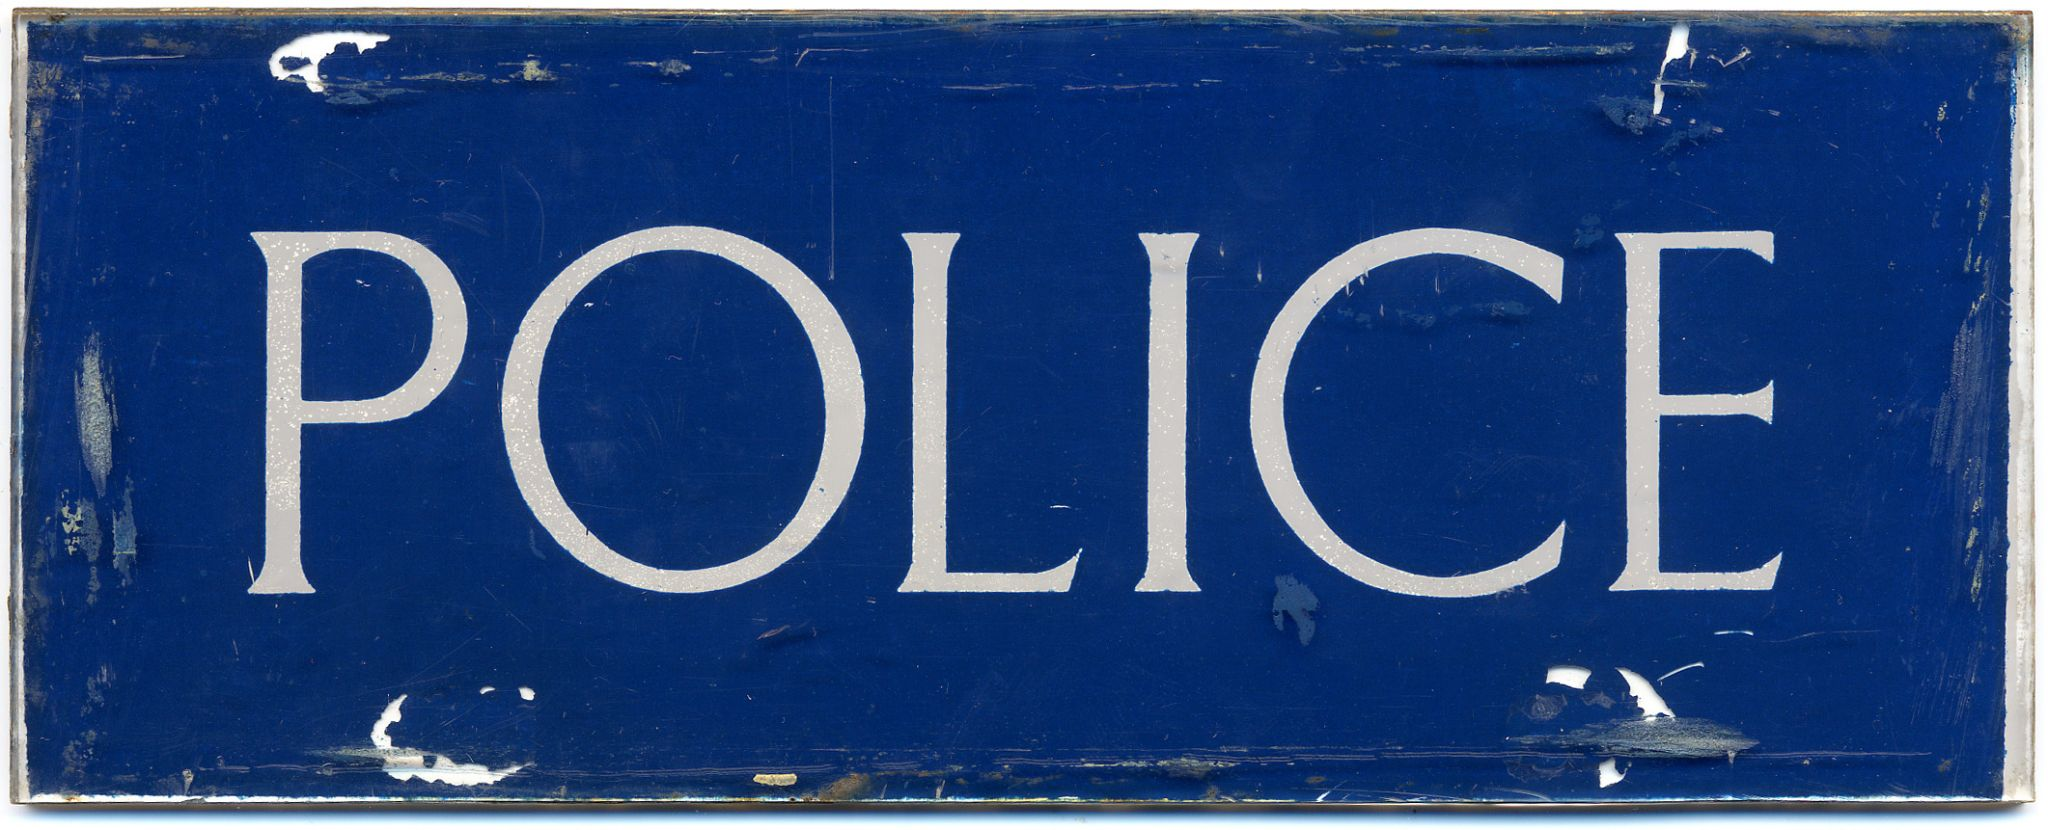 Police-Post-Sideplate-photo.jpg